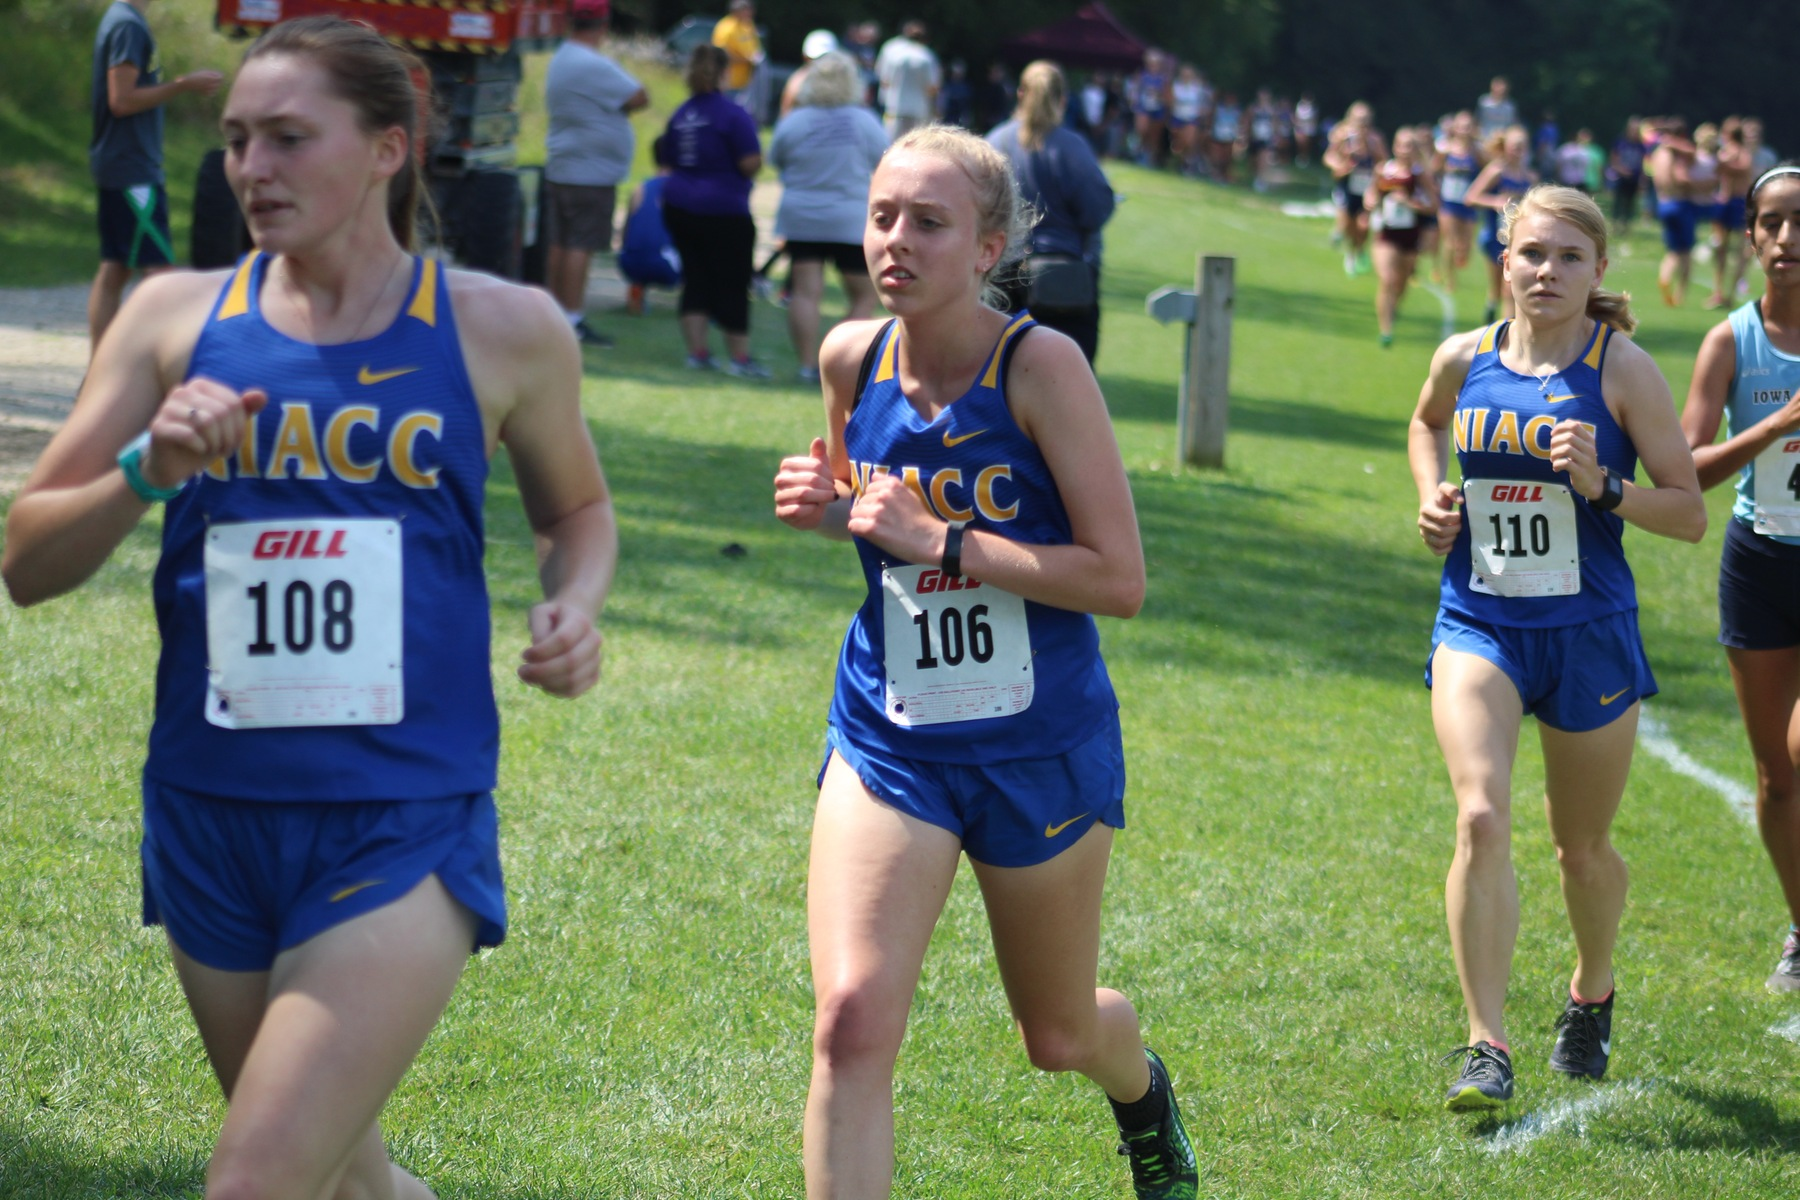 NIACC's Amy Fullerton (108) placed 16th at the regional time trial Saturday.